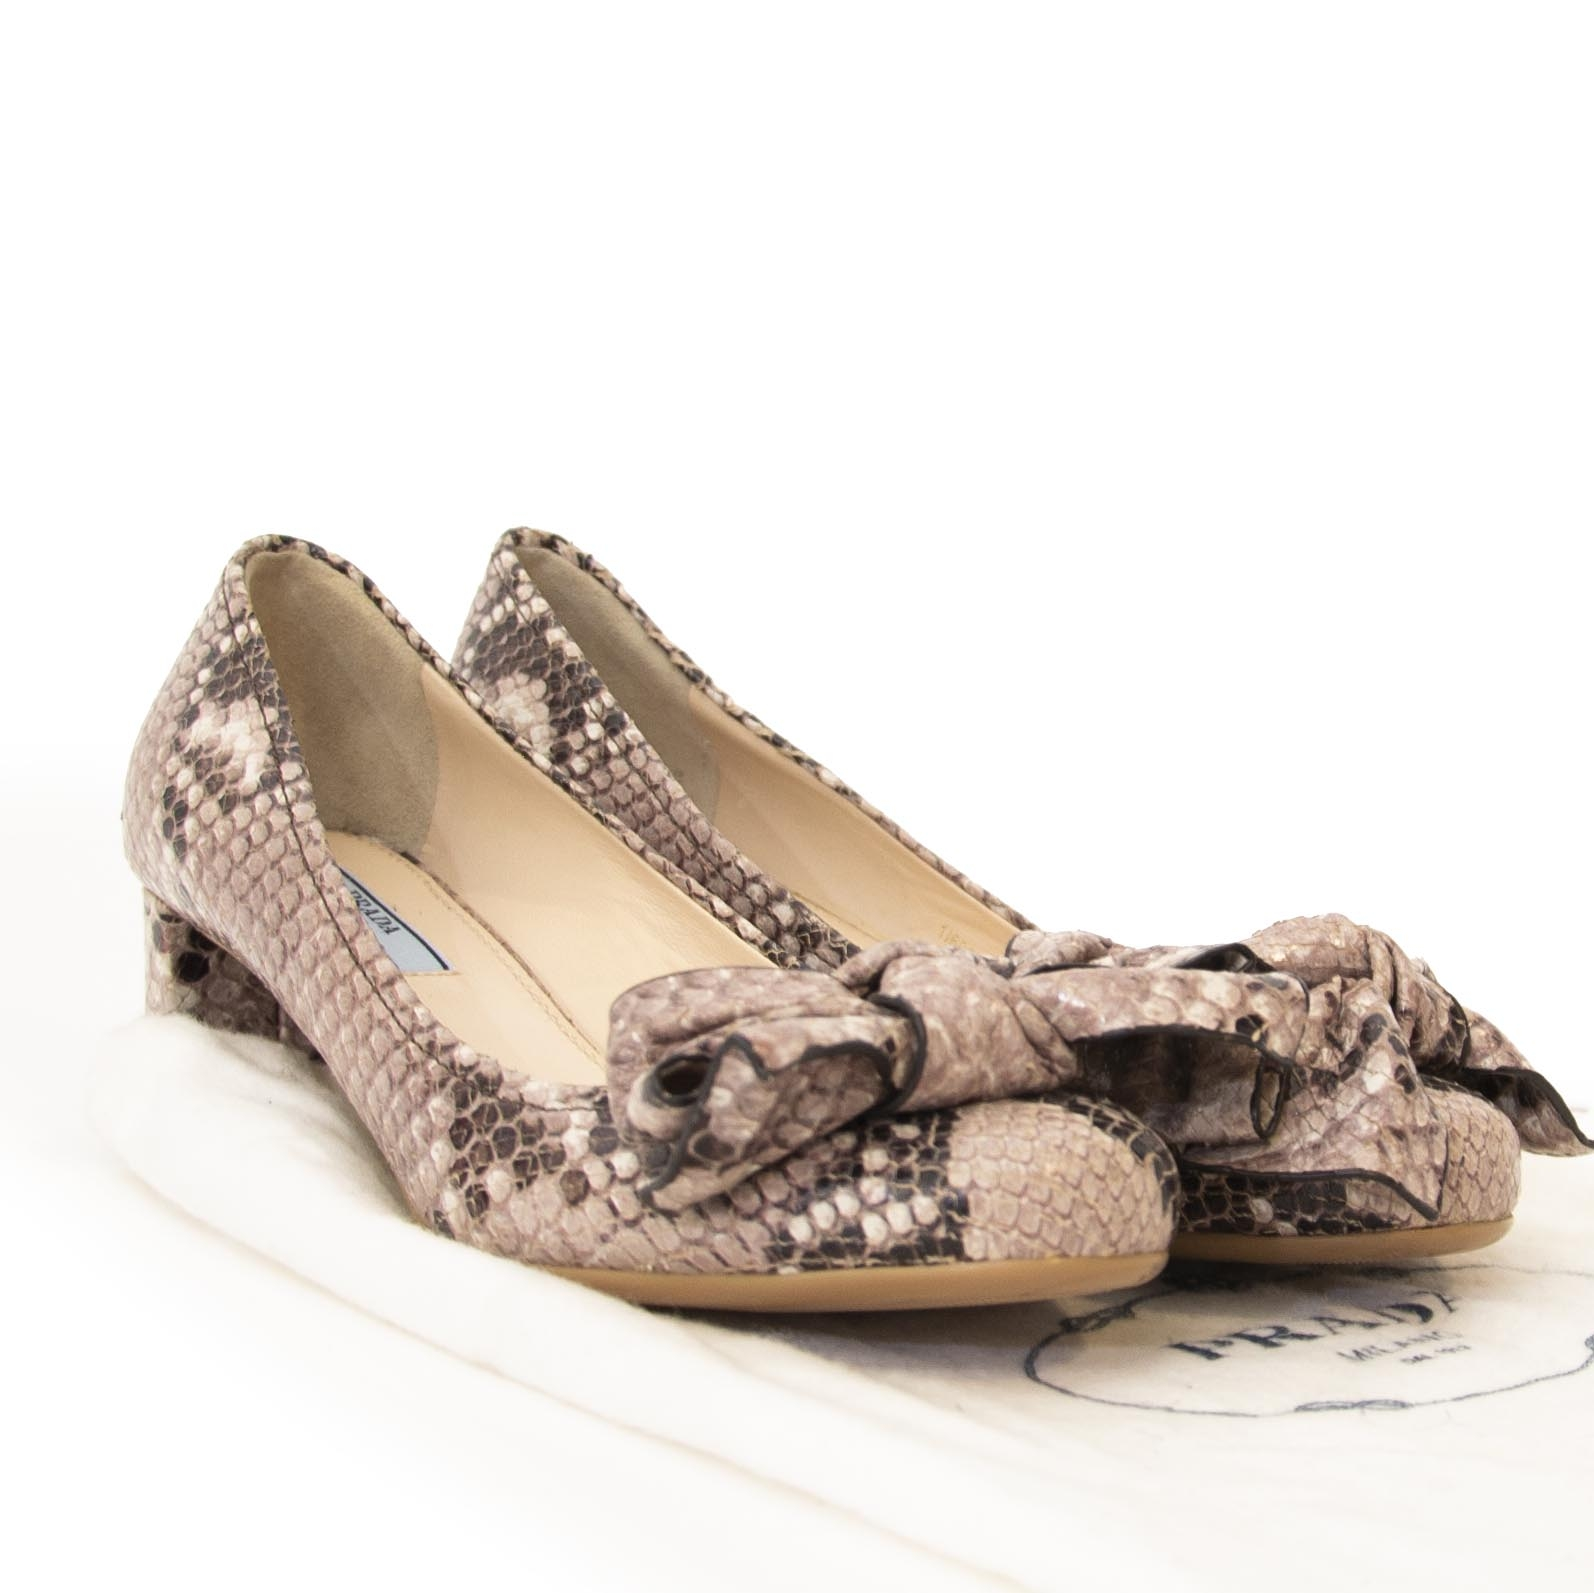 secondhand Prada heels python size 36 at Labellov